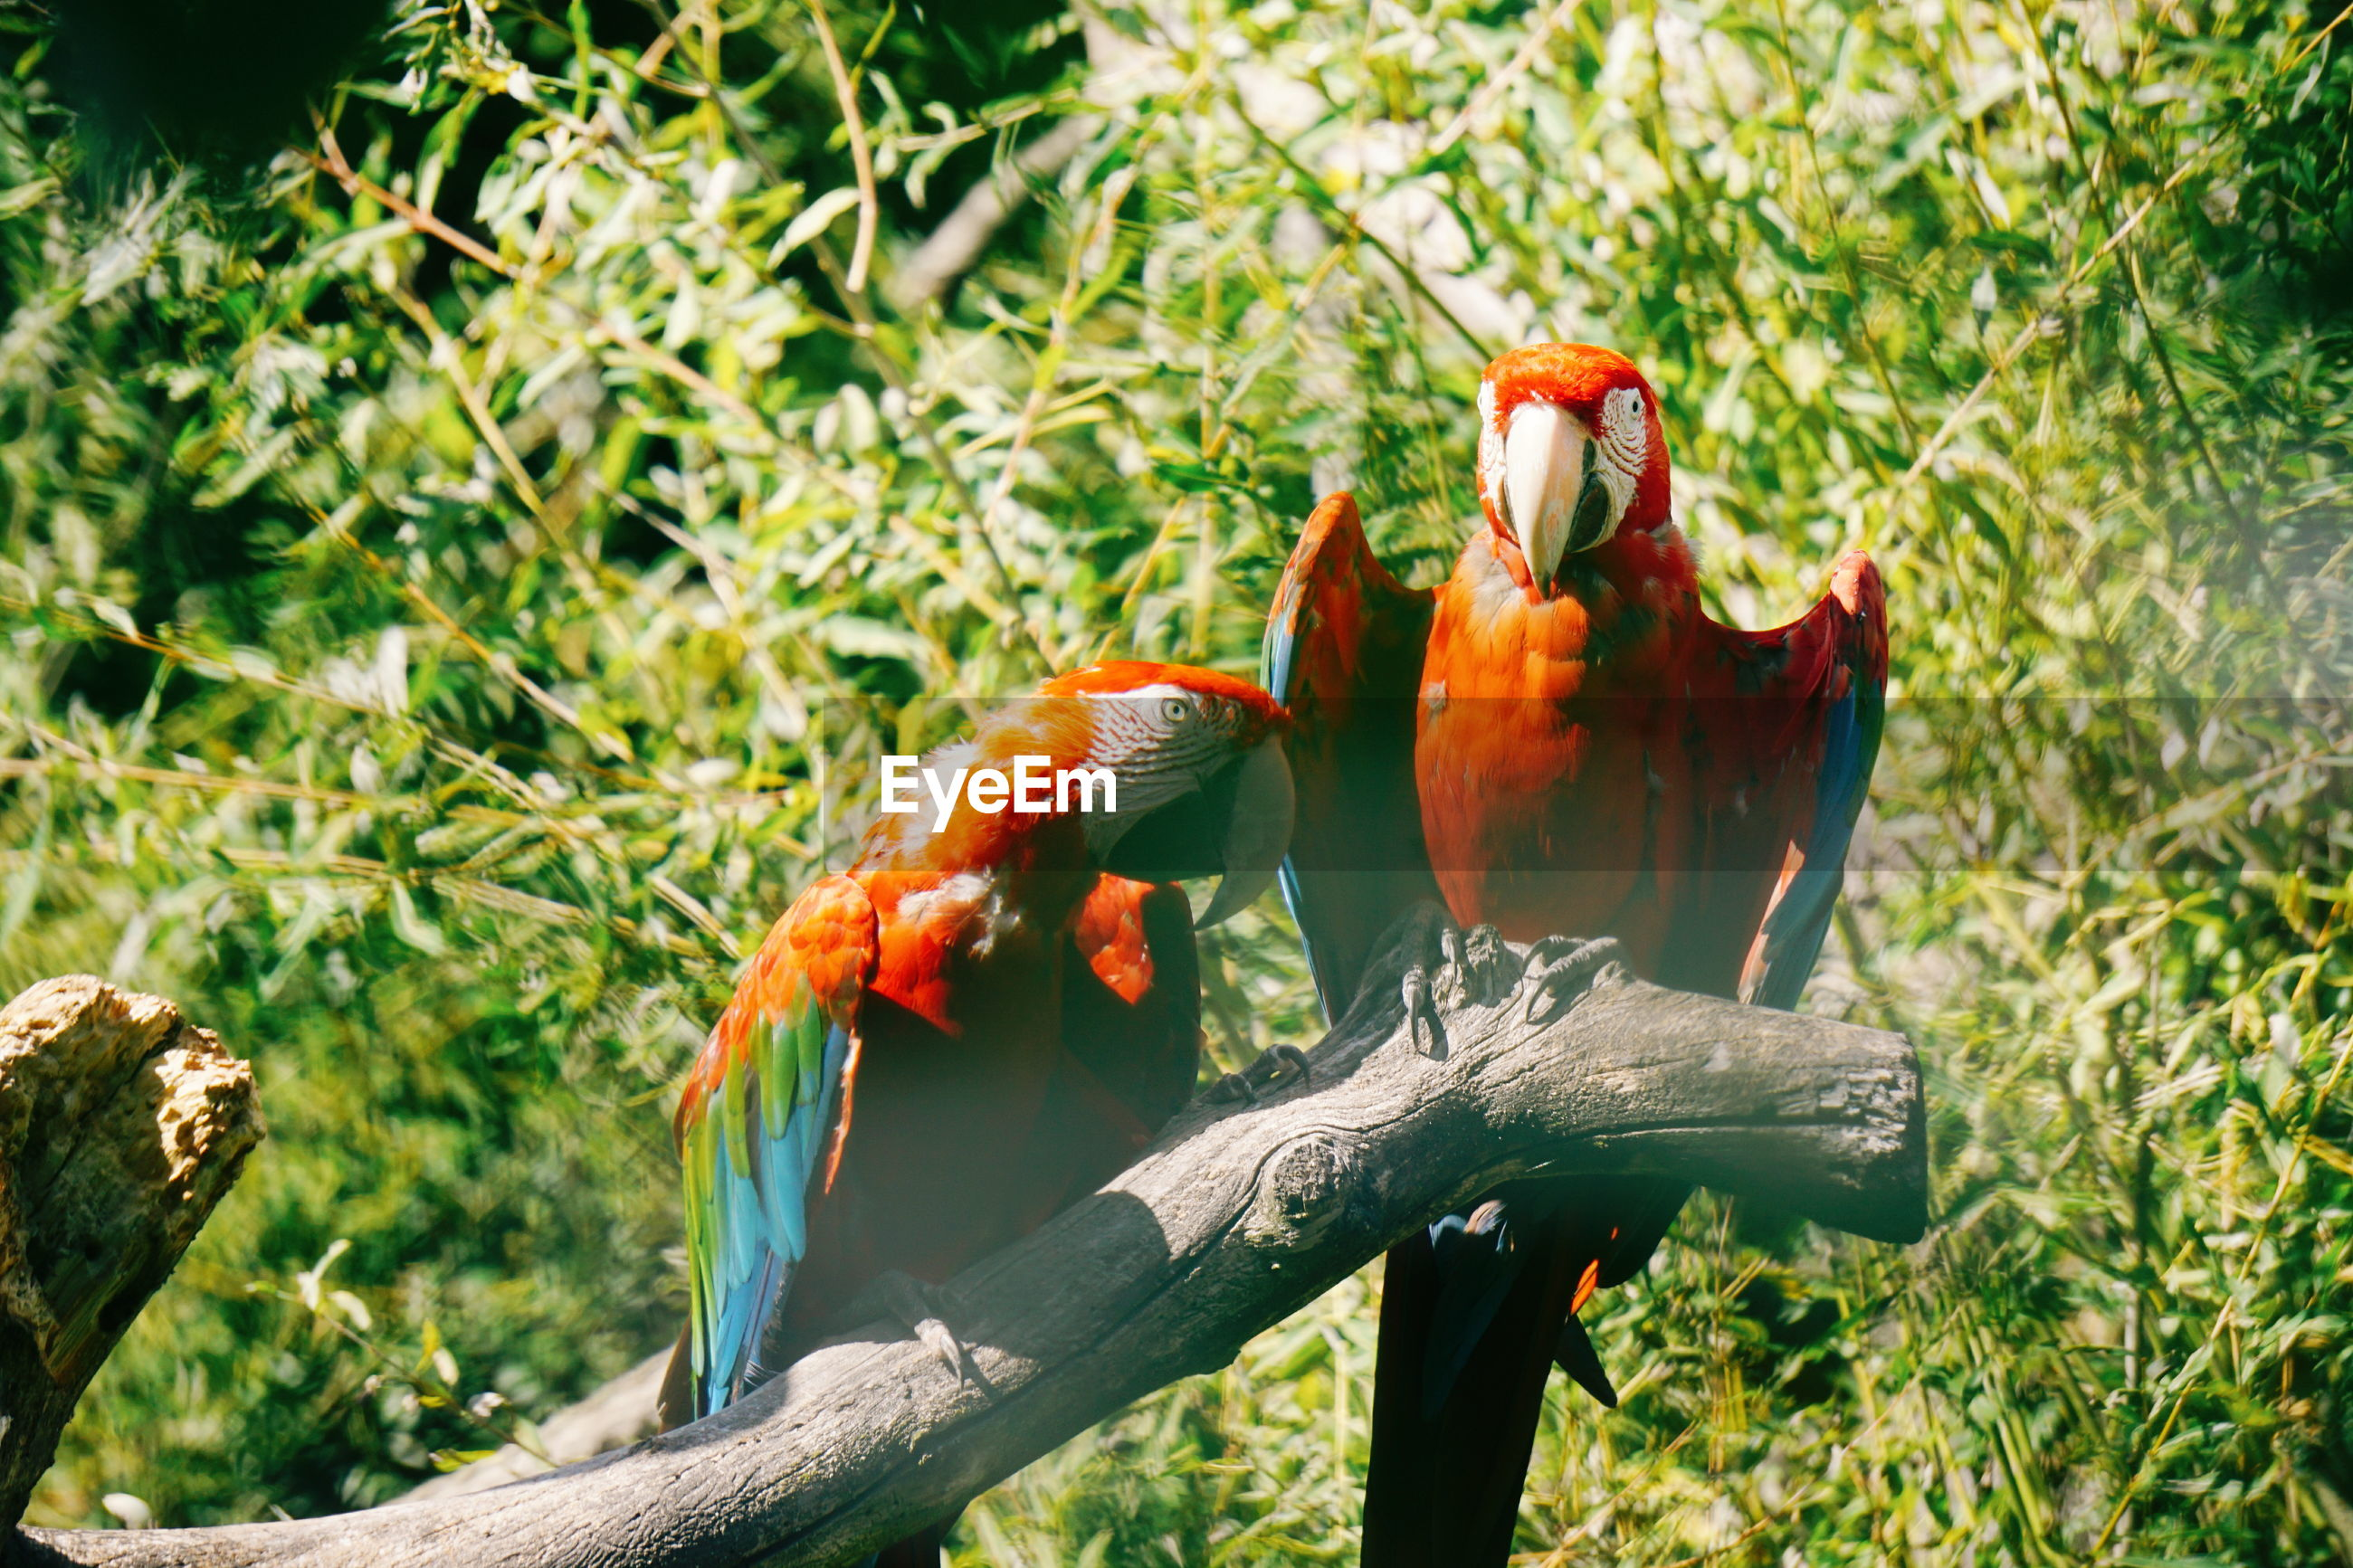 Close-up of macaws perching on tree